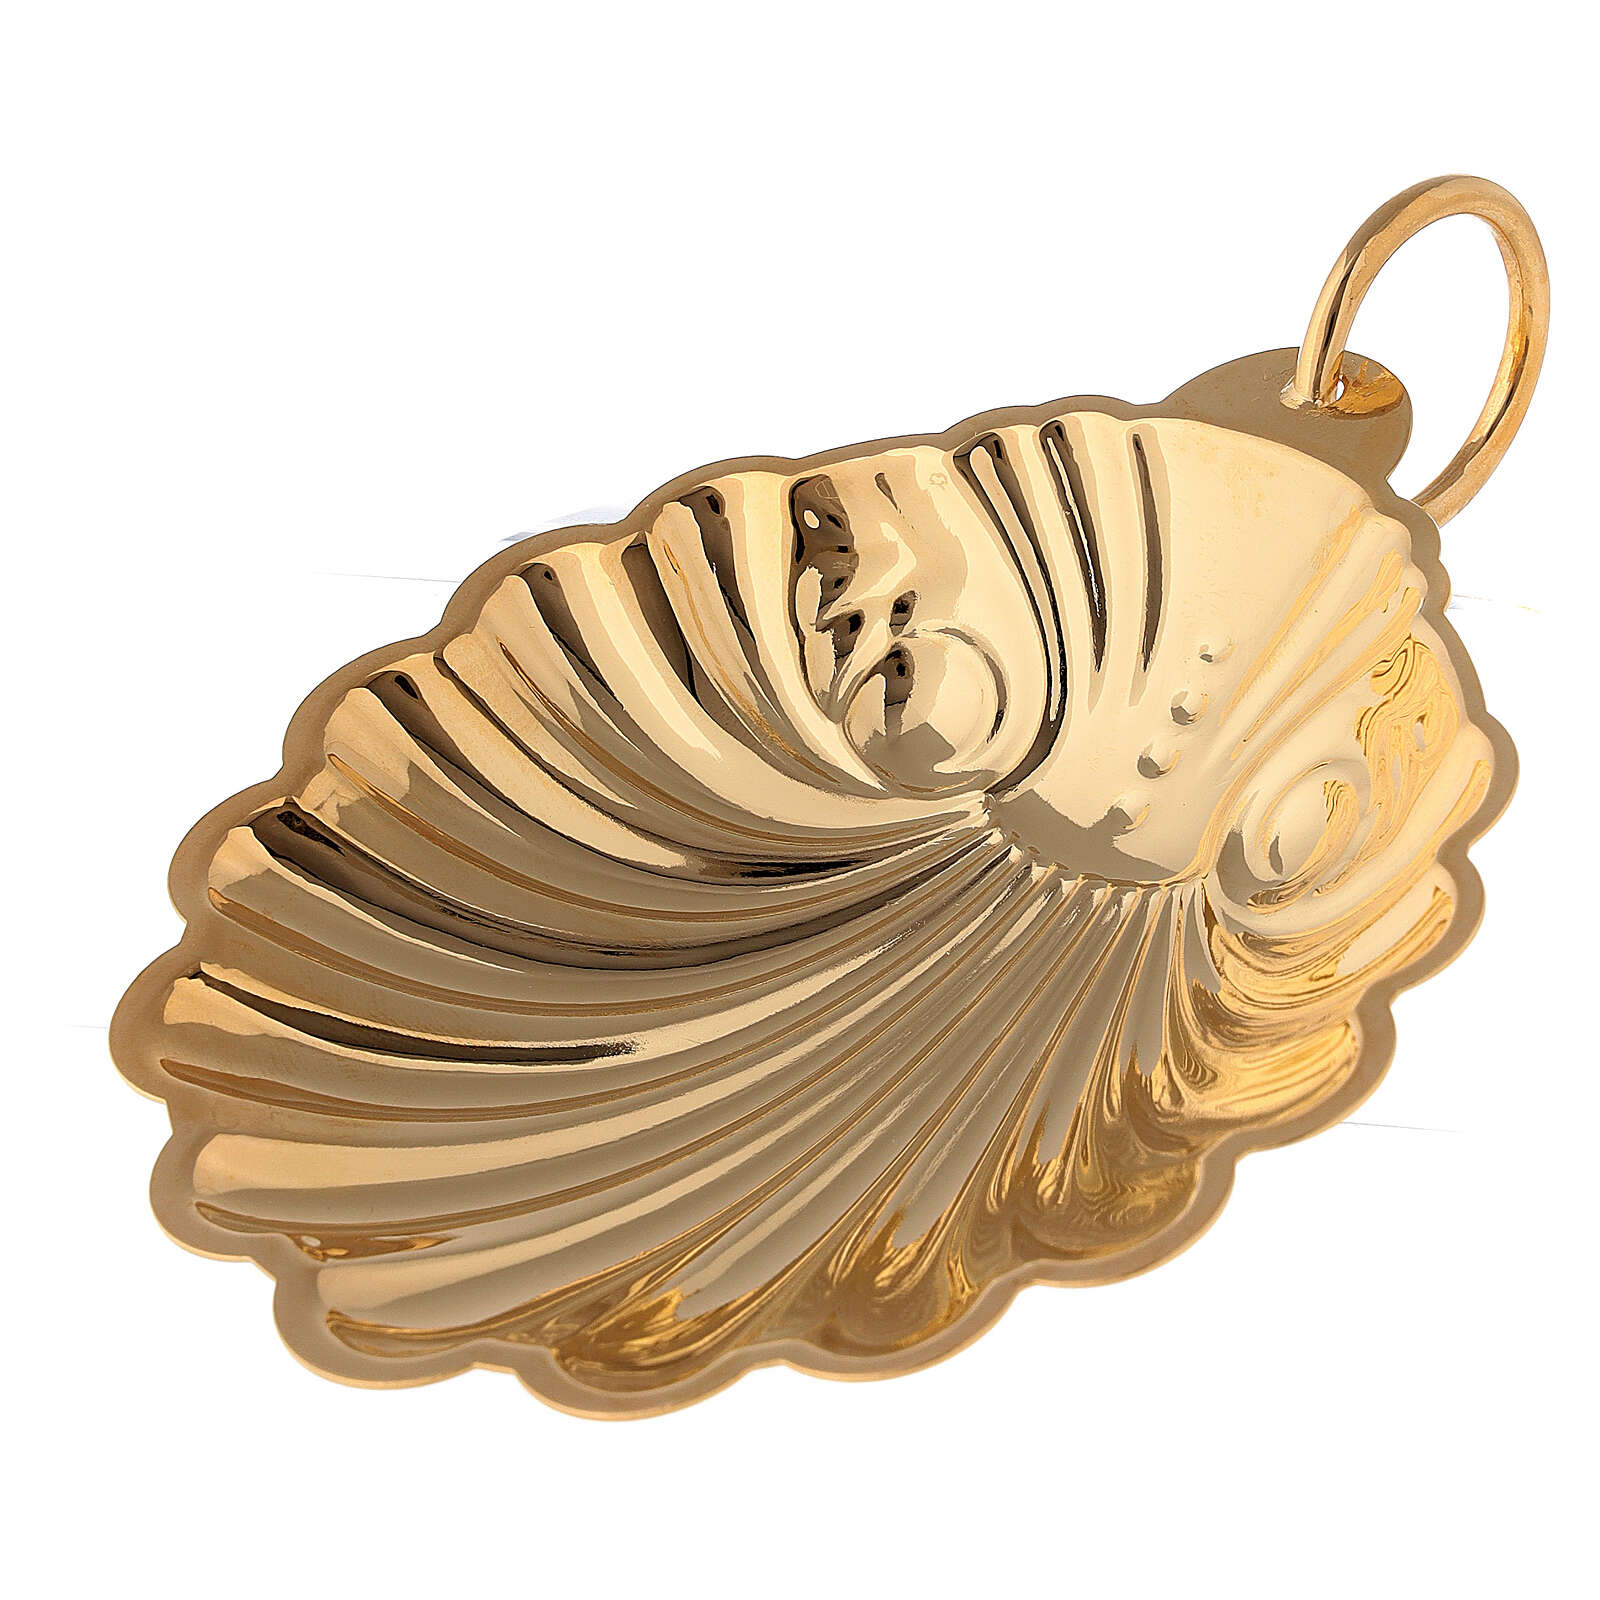 Gold-plated baptismal shell with handle 3